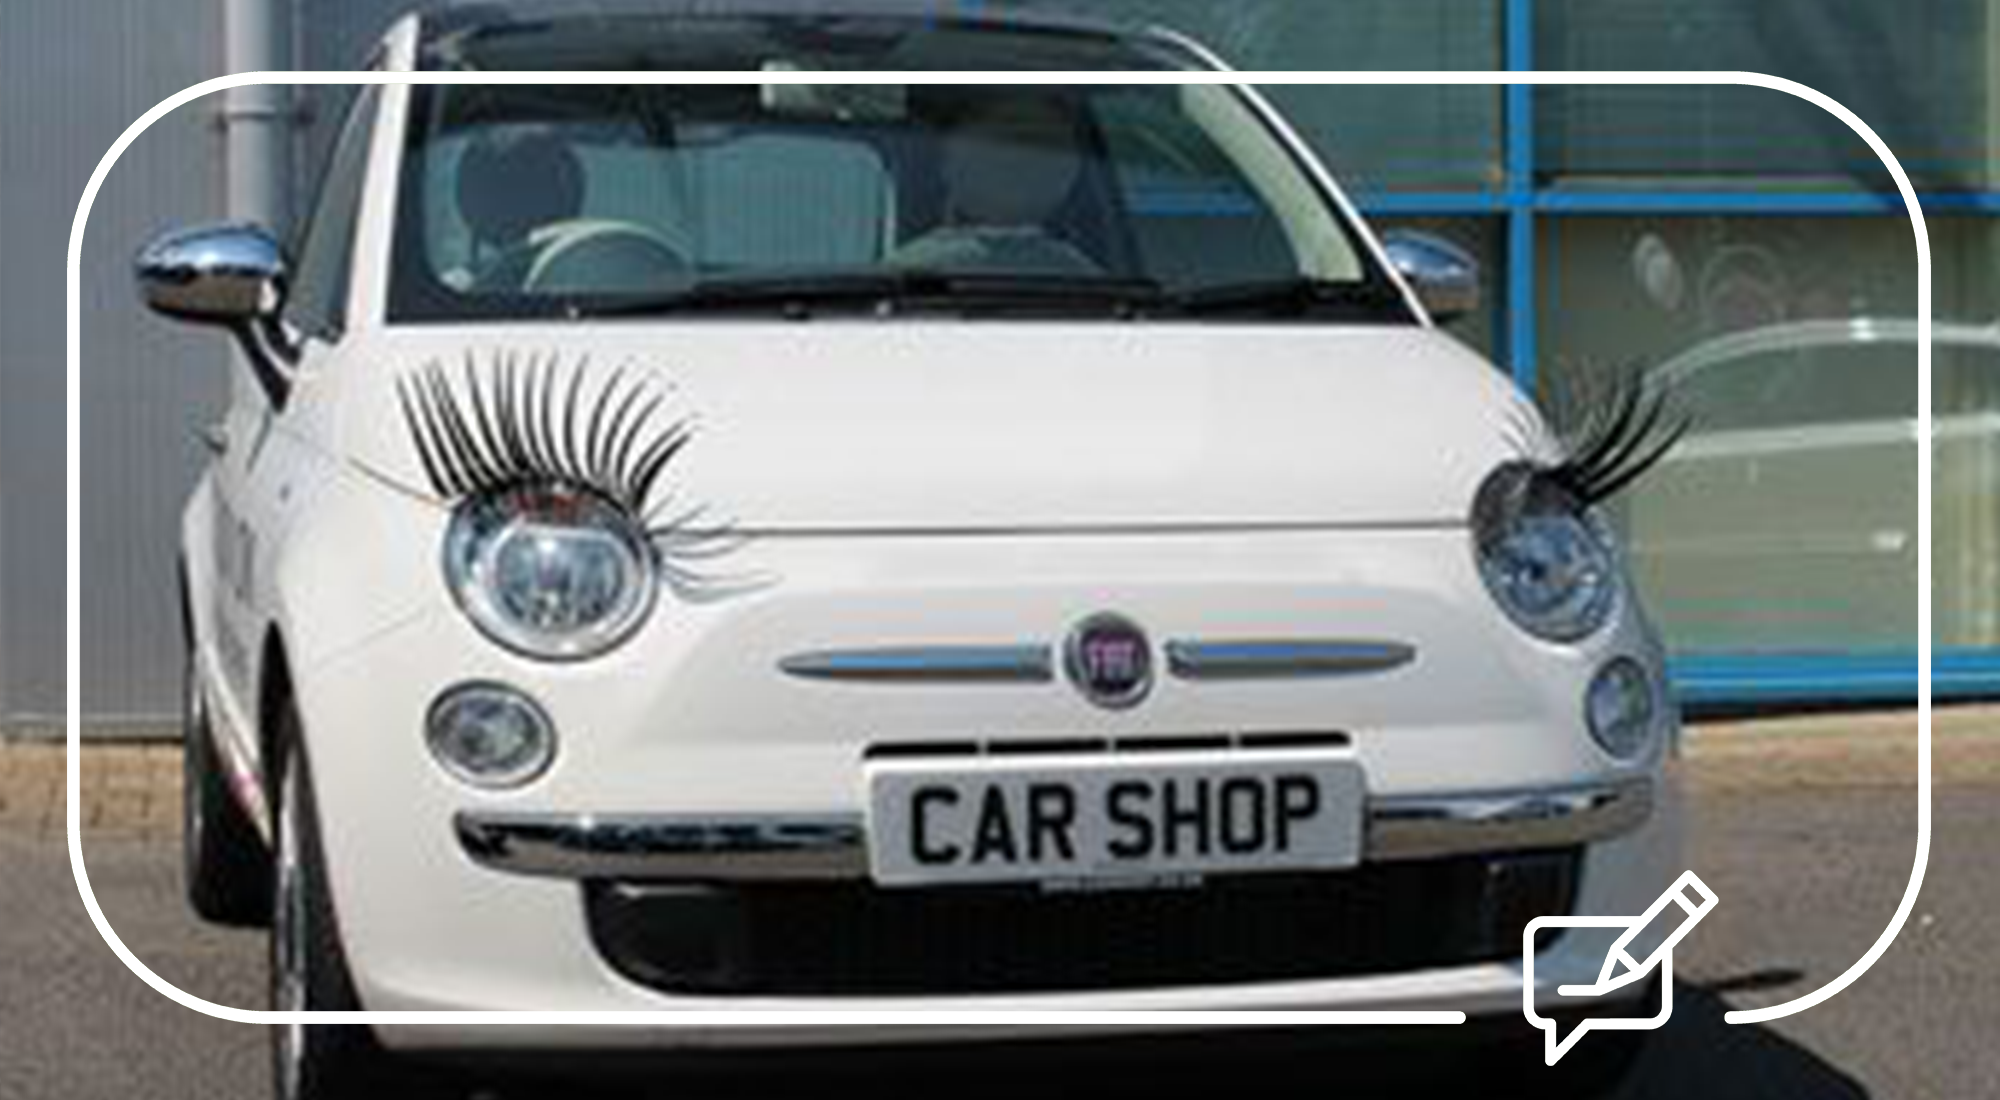 Headlight Eyelashes Hailed As The Ultimate In Bad Taste Car Accessories